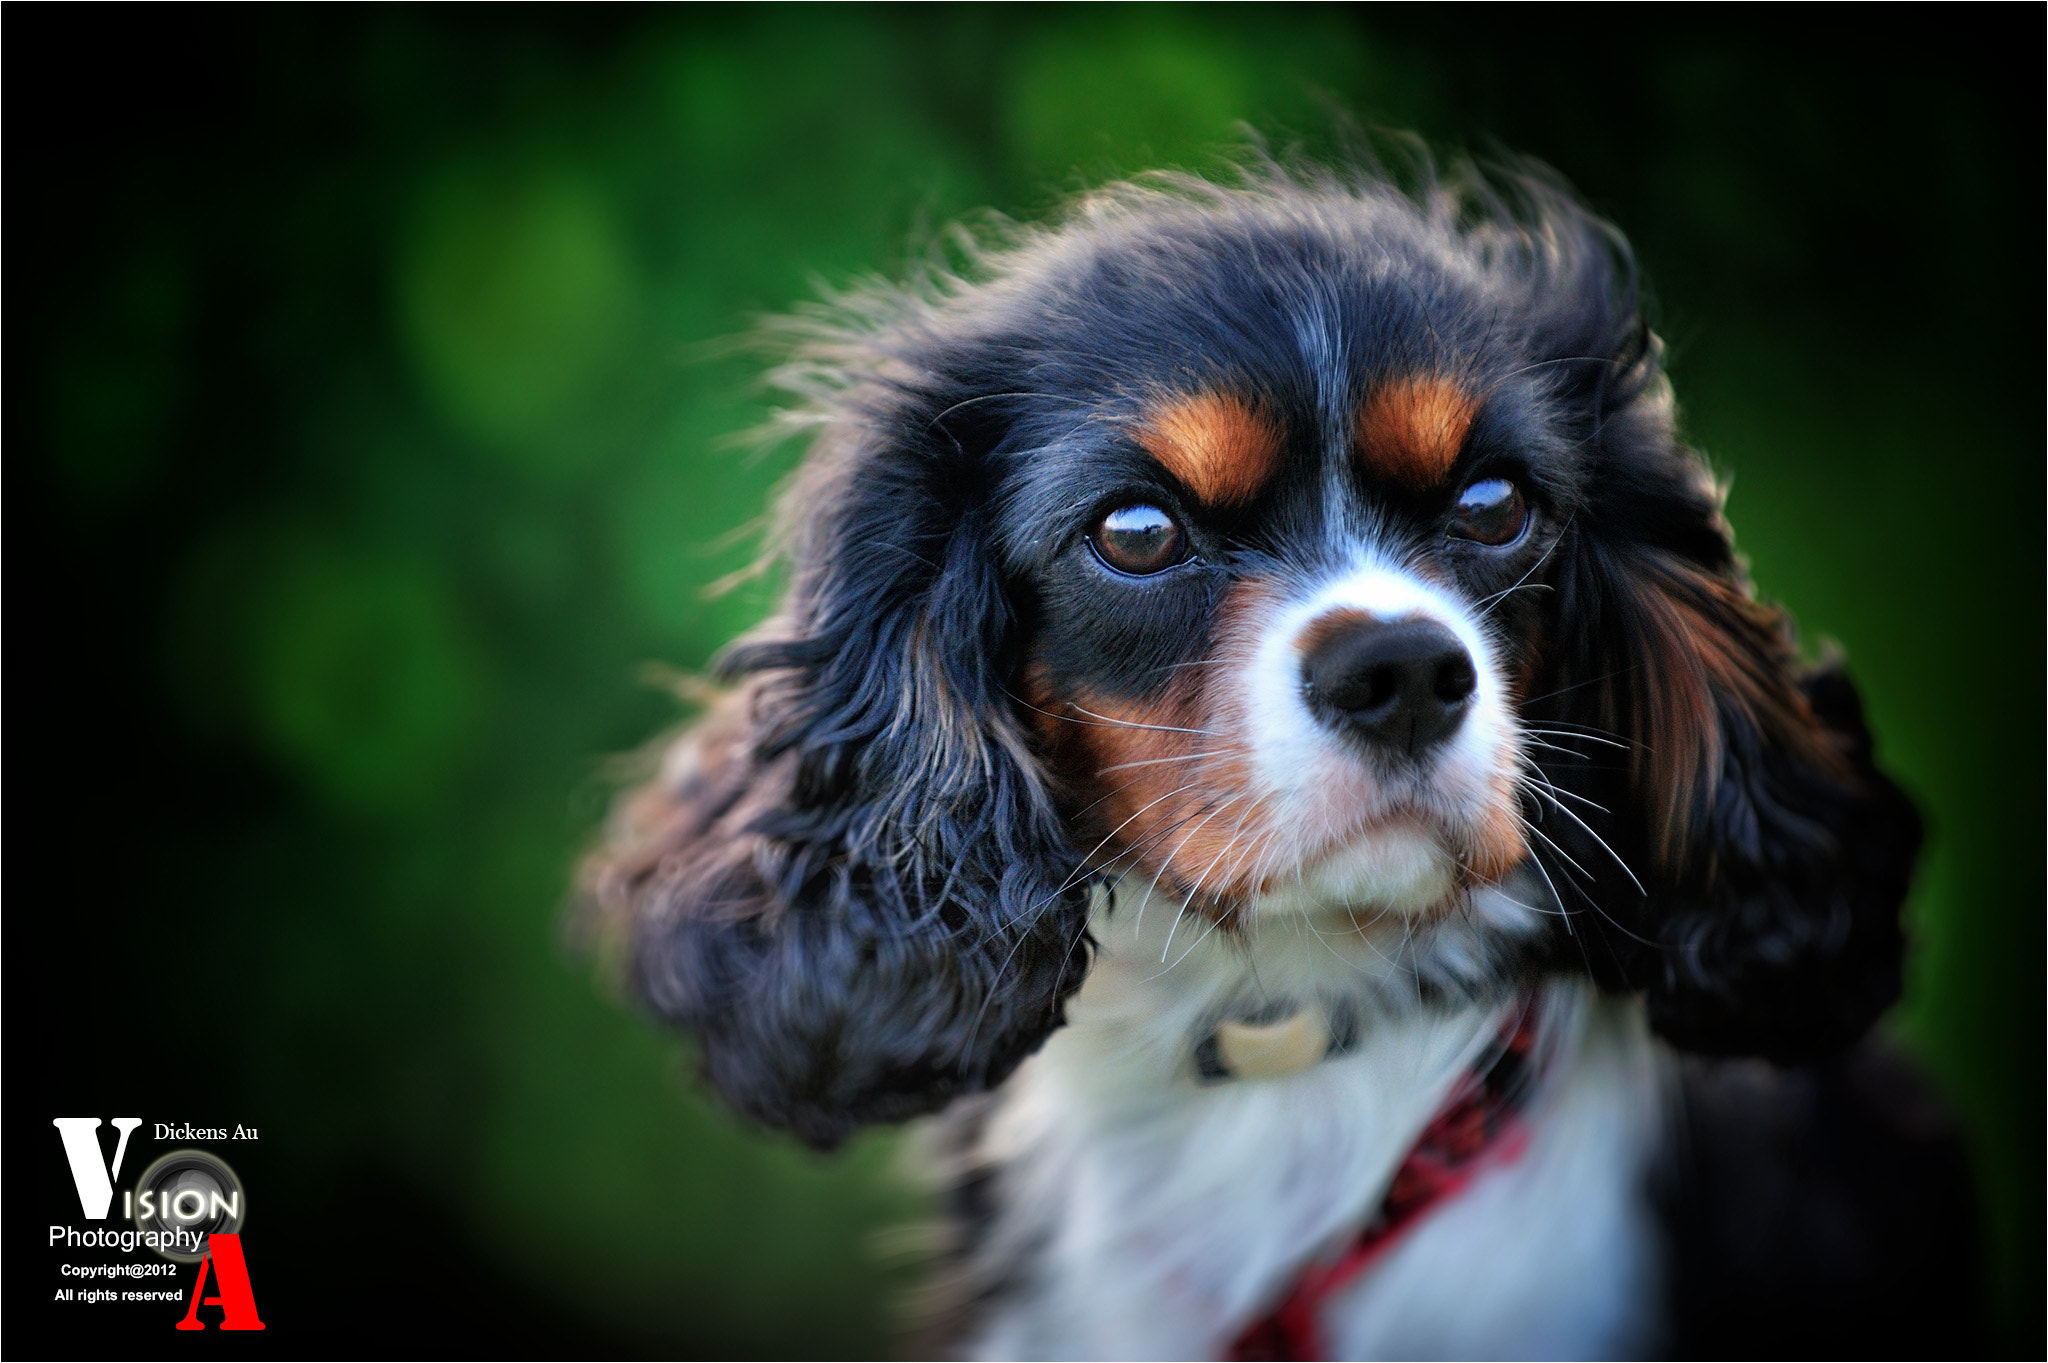 Photograph KingCharles - self confidence by Dickens Au on 500px